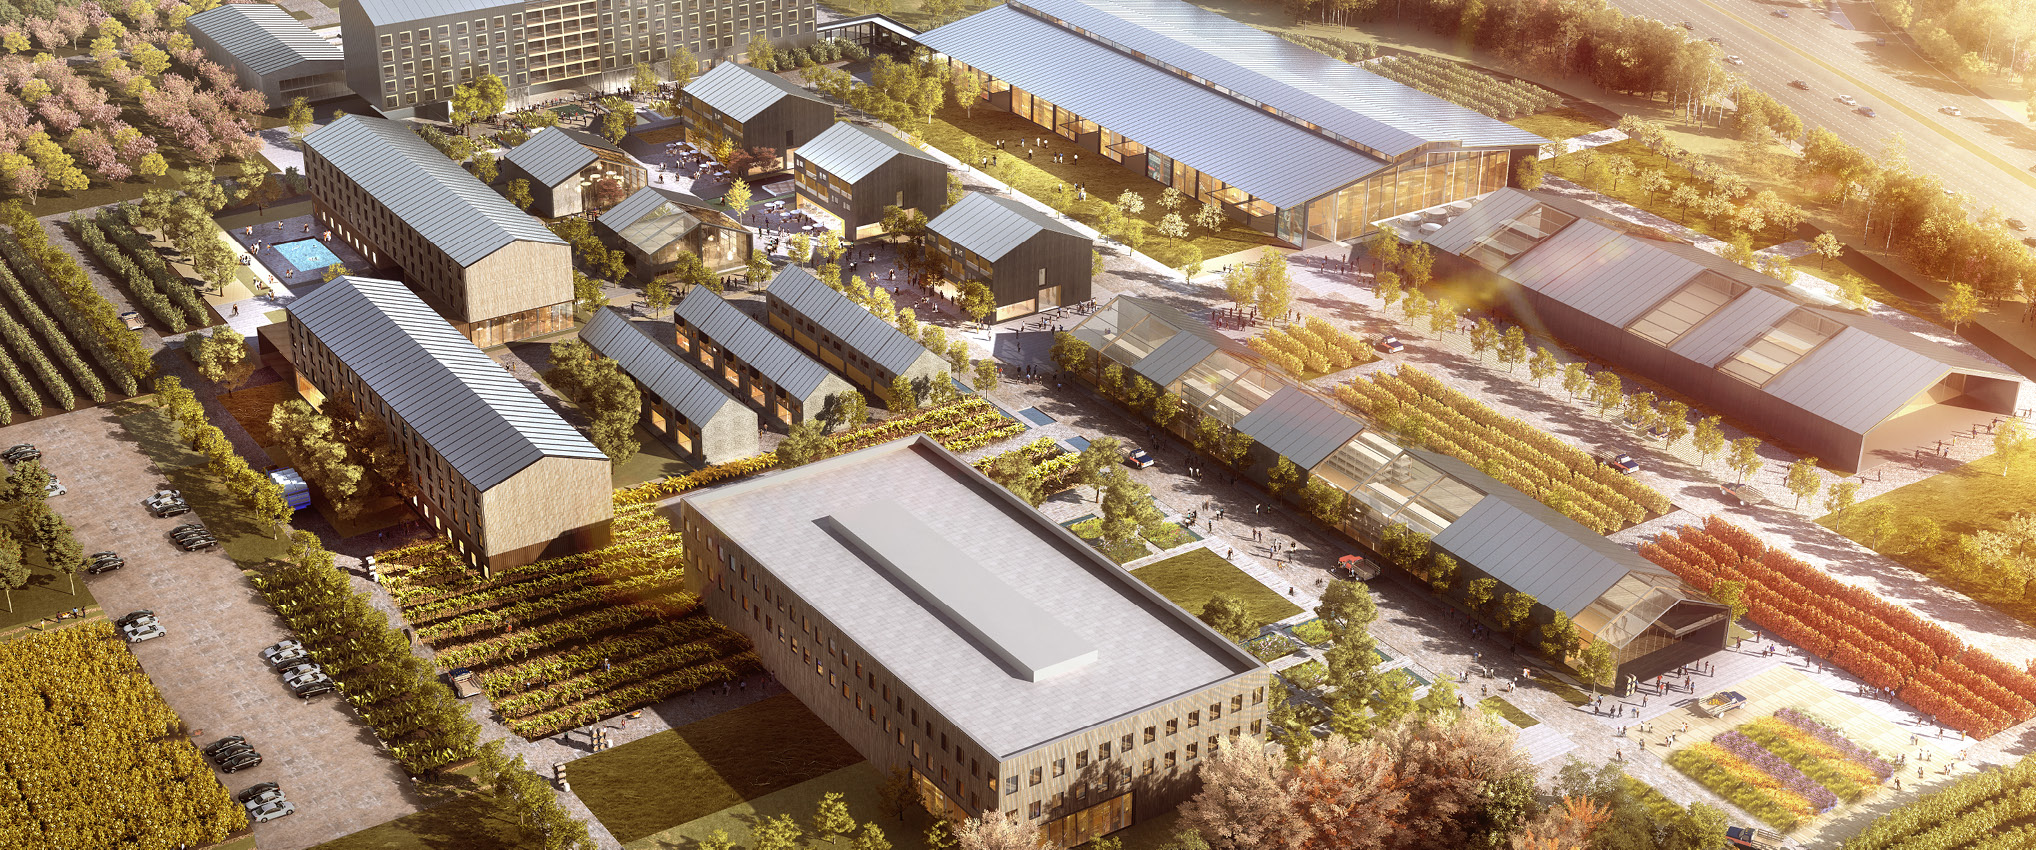 HKS-Designed Farm at Crossroads Commons Receives 2019 Juror Award from AIA Dallas